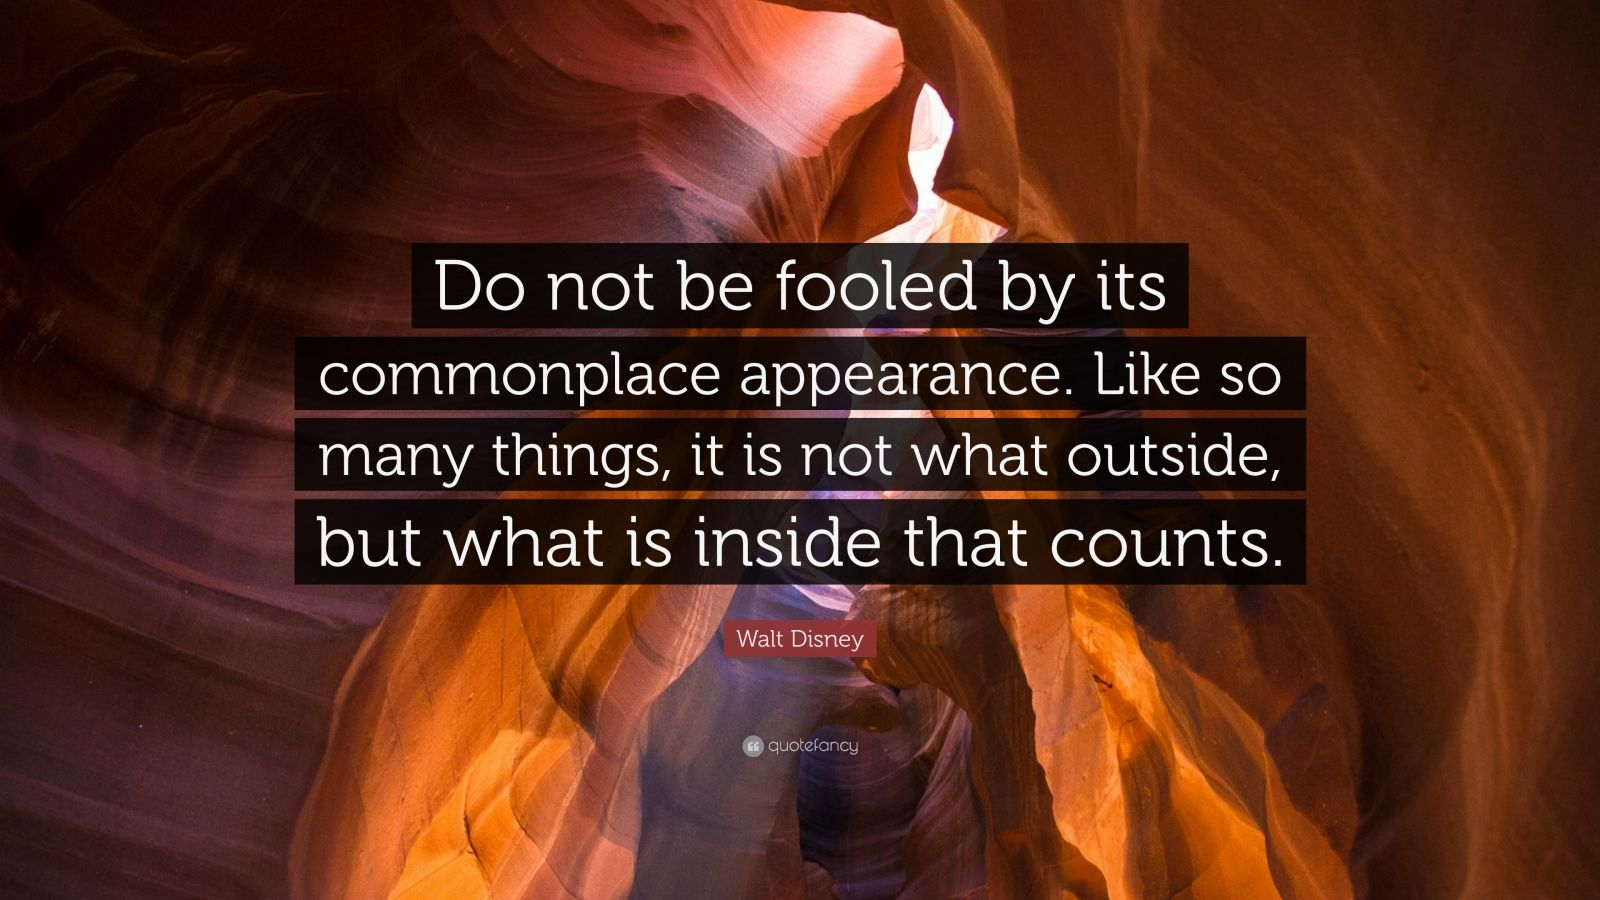 """Walt Disney Quote: """"Do not be fooled by its commonplace appearance. Like so many things, it is not what outside, but what is inside that counts."""""""